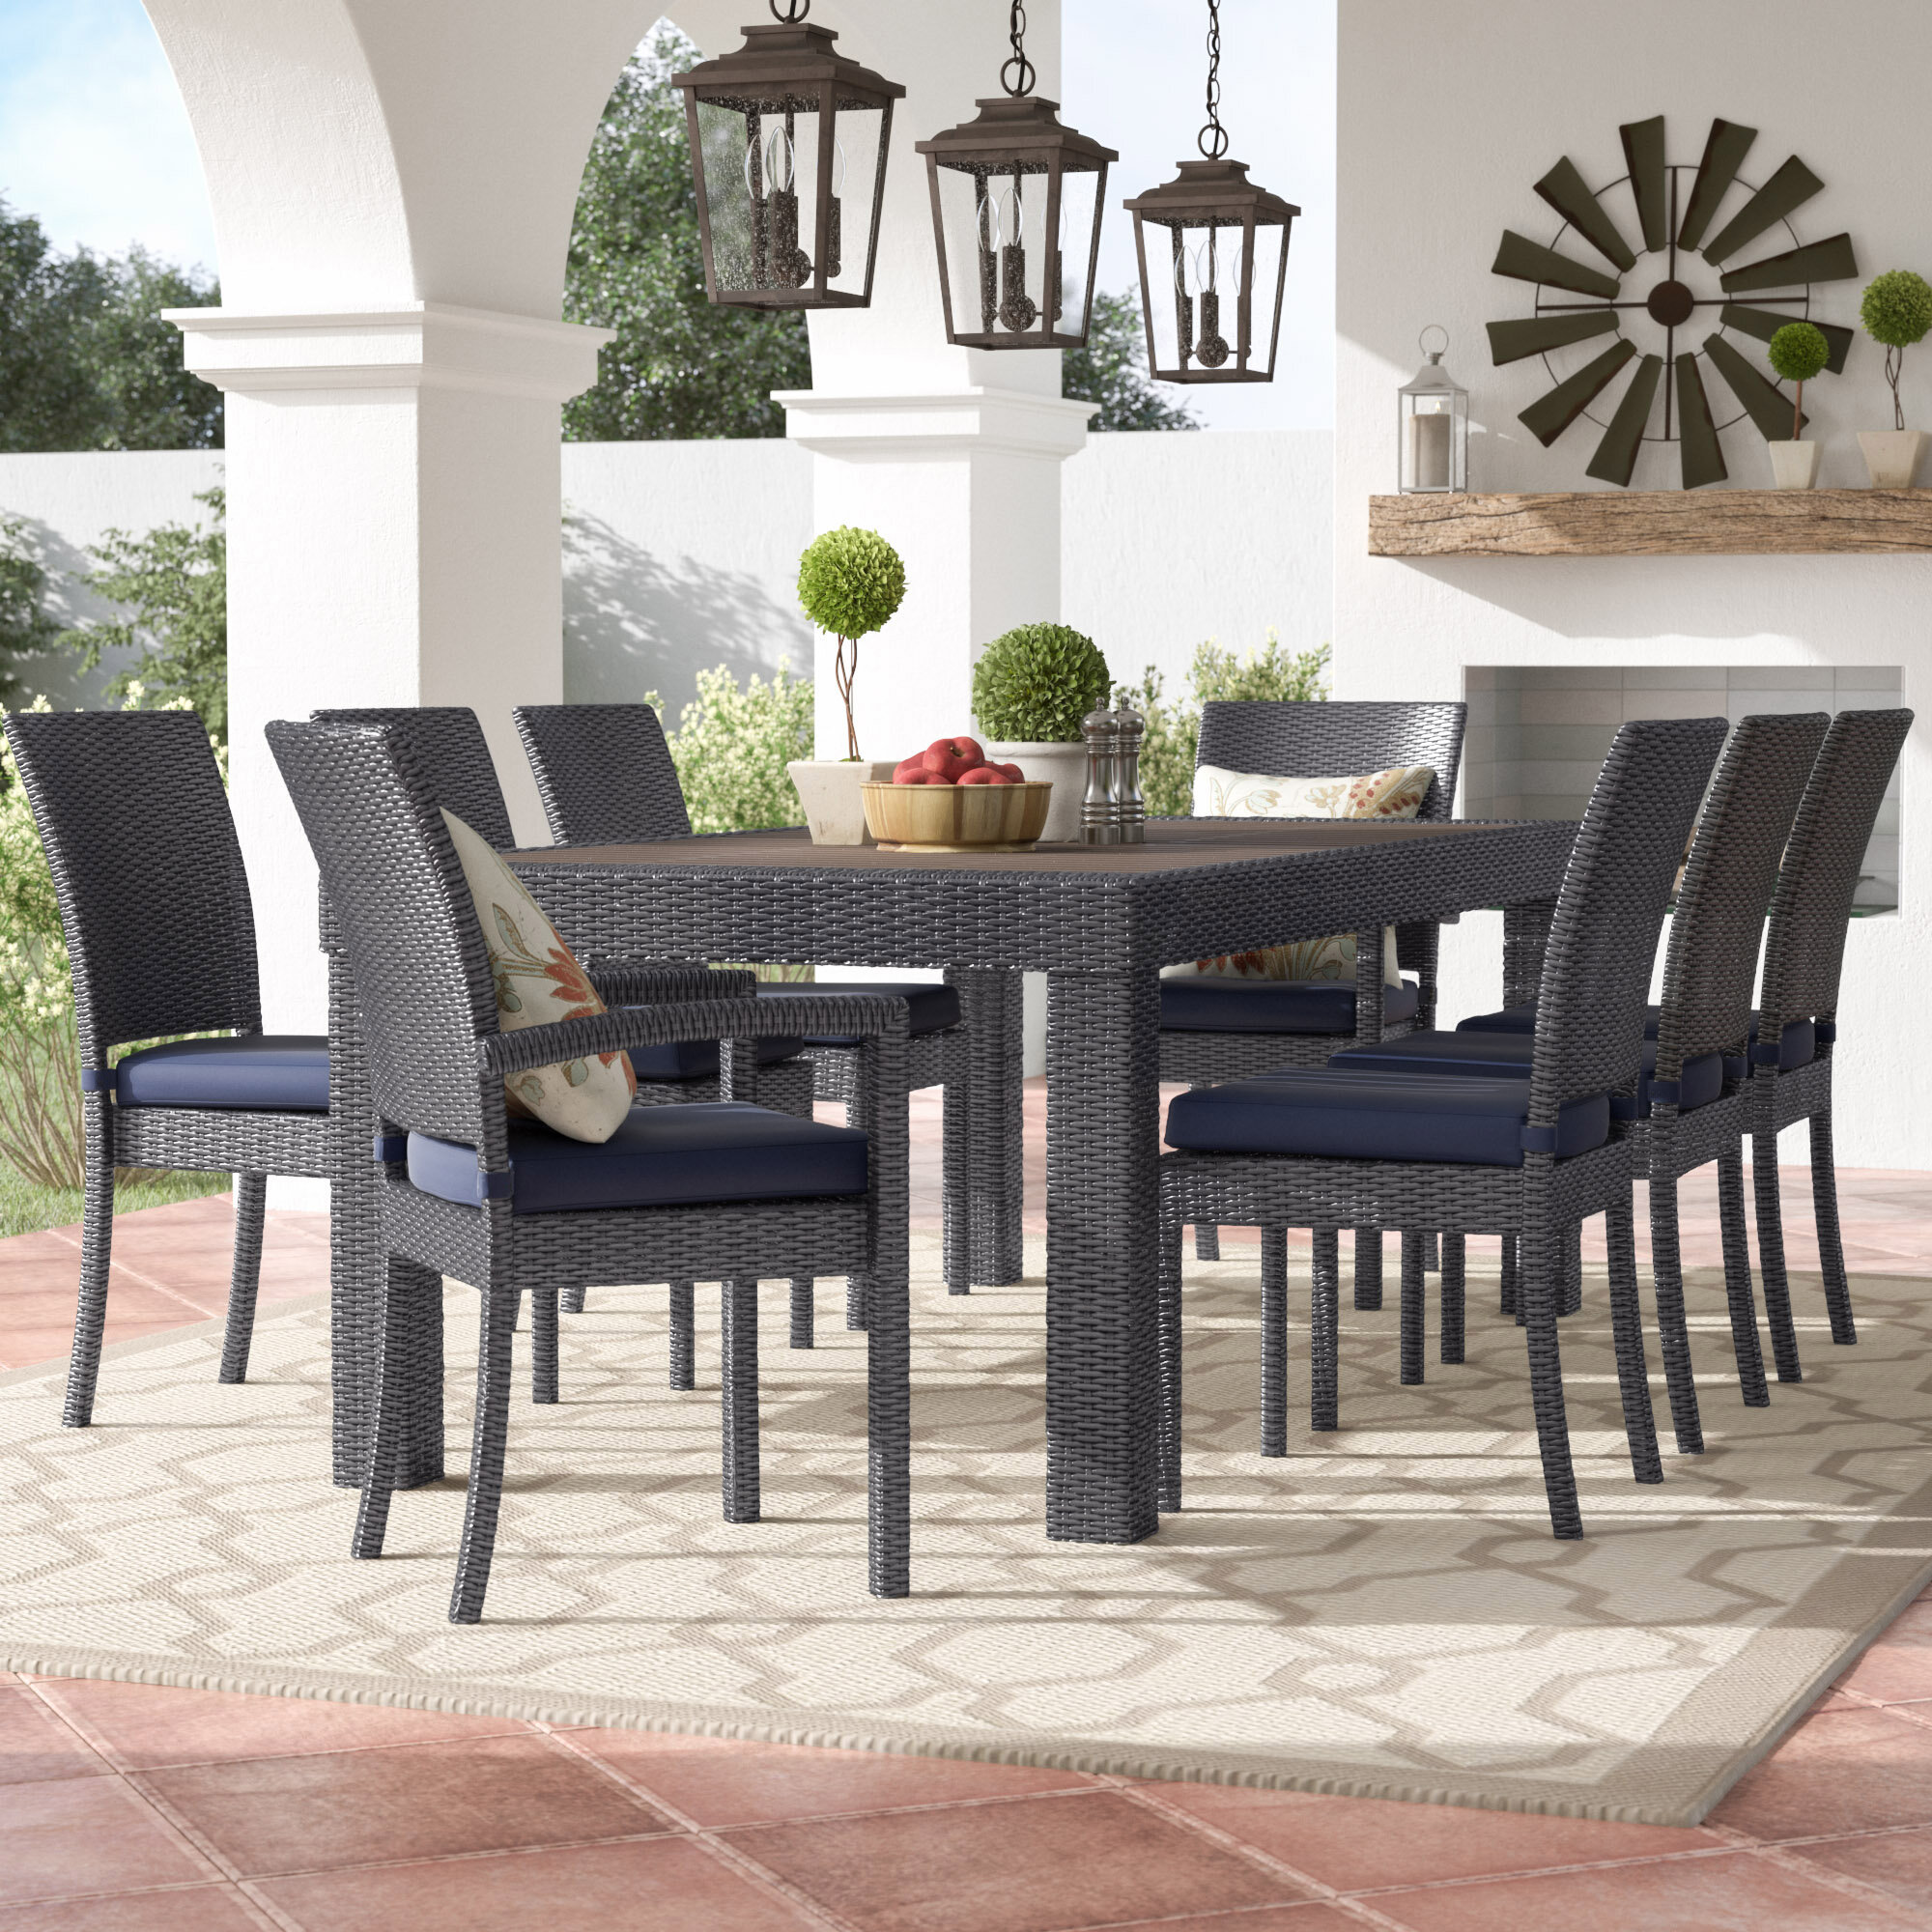 Three Posts Evansville 9 Piece Outdoor Dining Set with Cushion TRPT5366 Color: Charcoal Grey